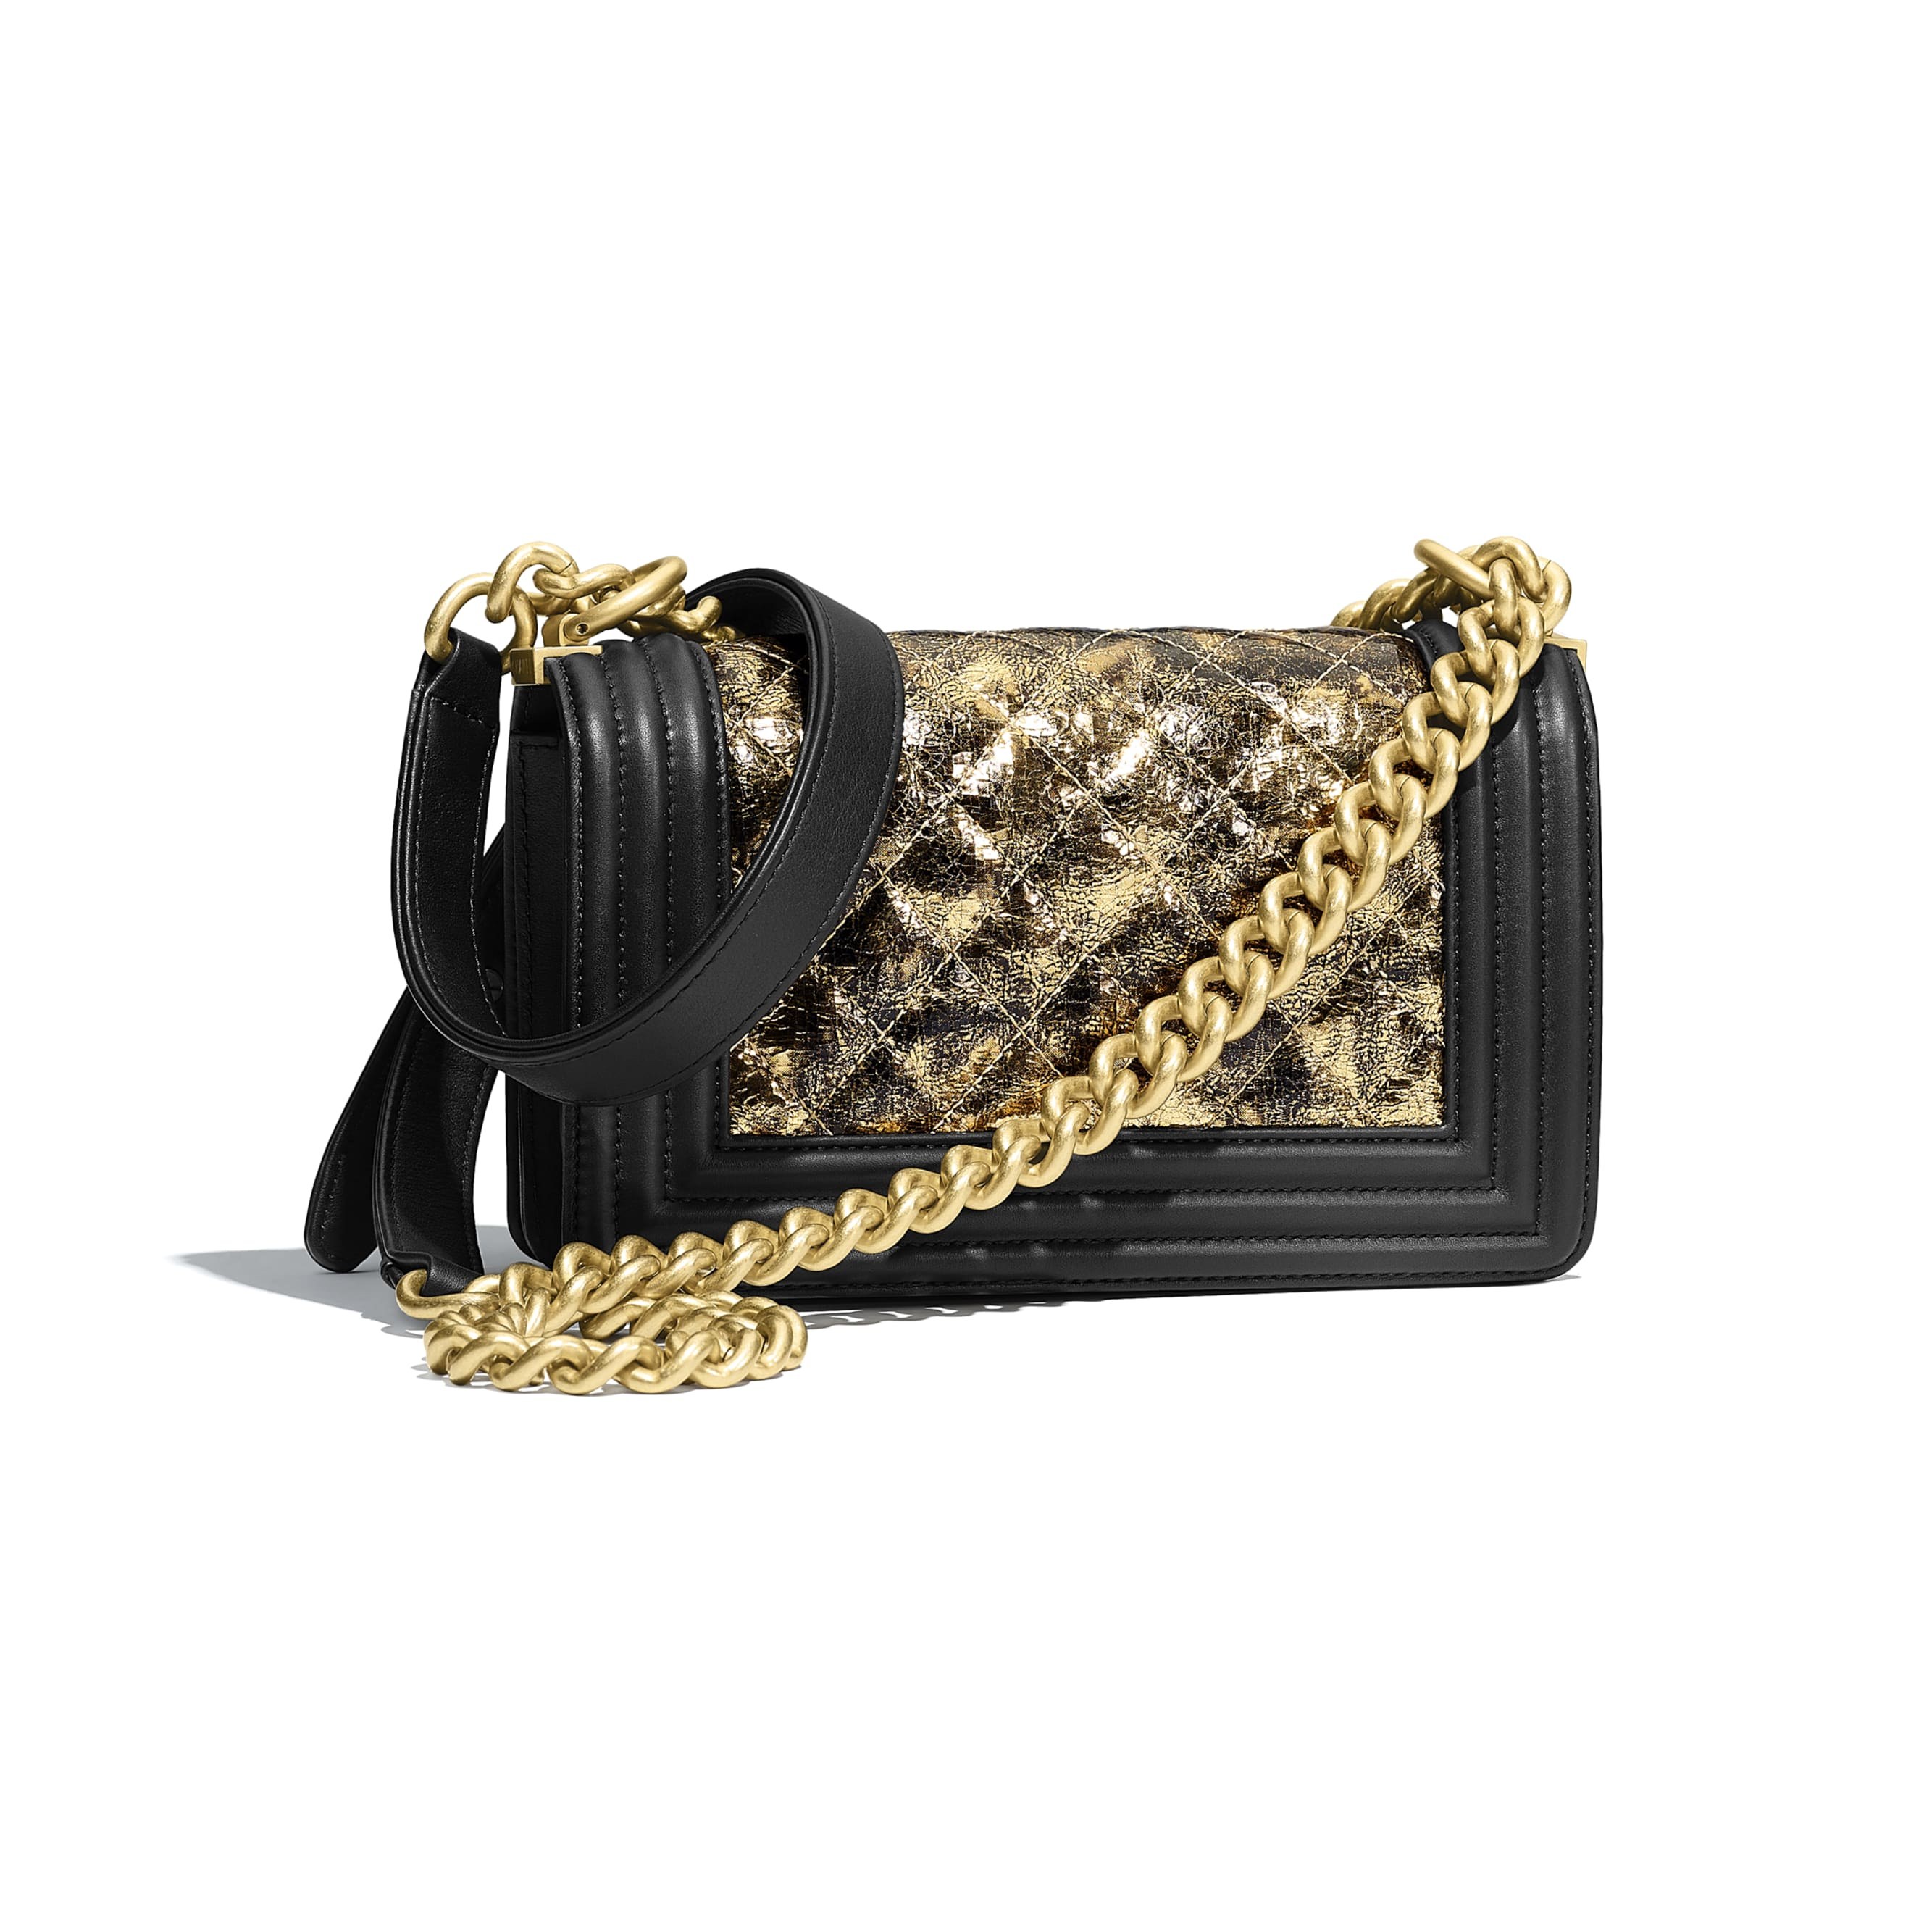 Small BOY CHANEL Handbag - Gold & Black - Metallic Crumpled Goatskin, Calfskin & Gold-Tone Metal - Alternative view - see standard sized version